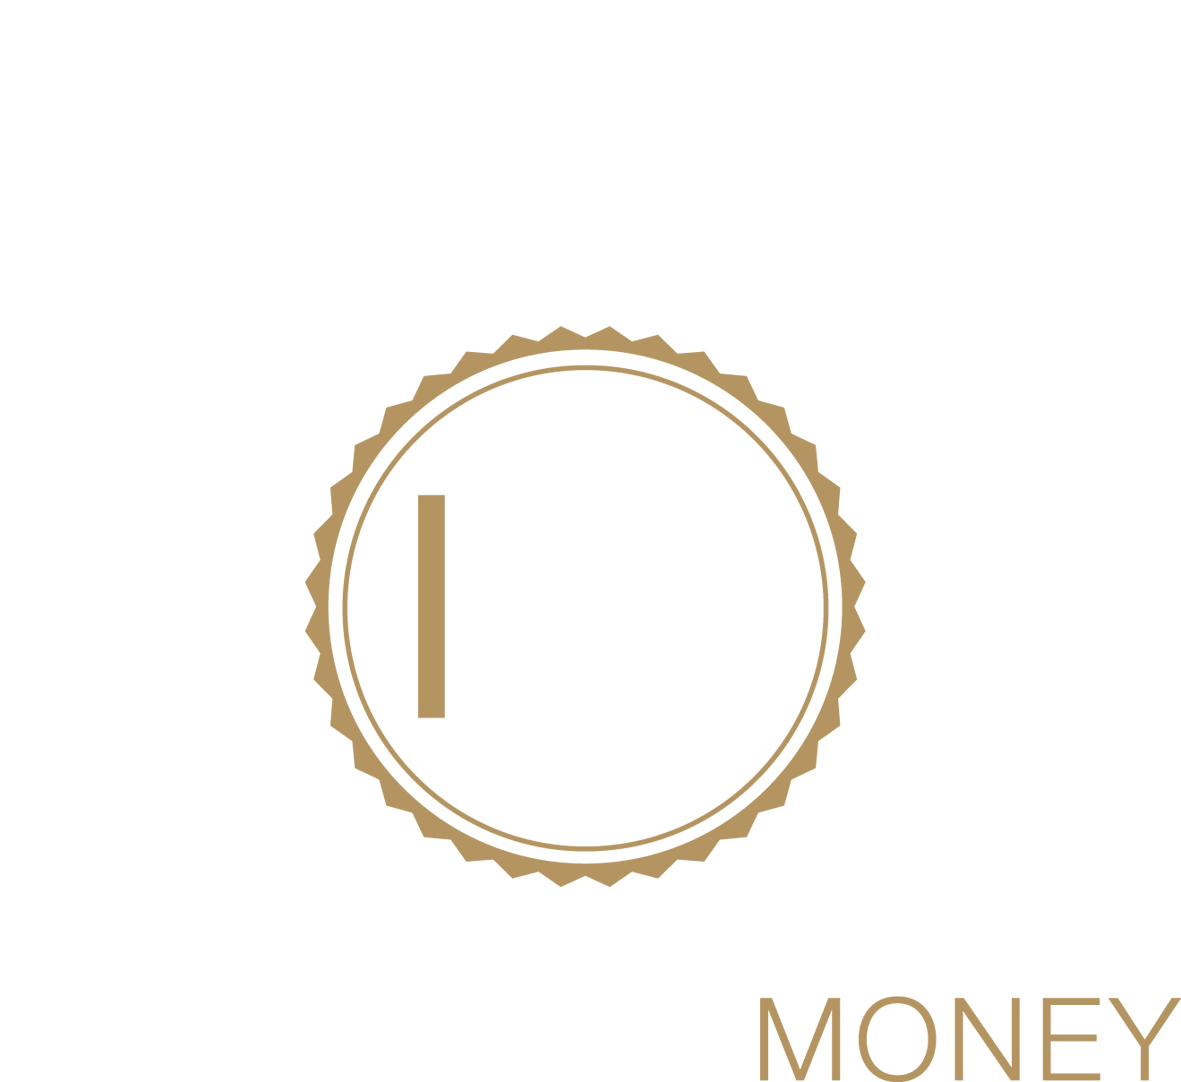 powered by IM